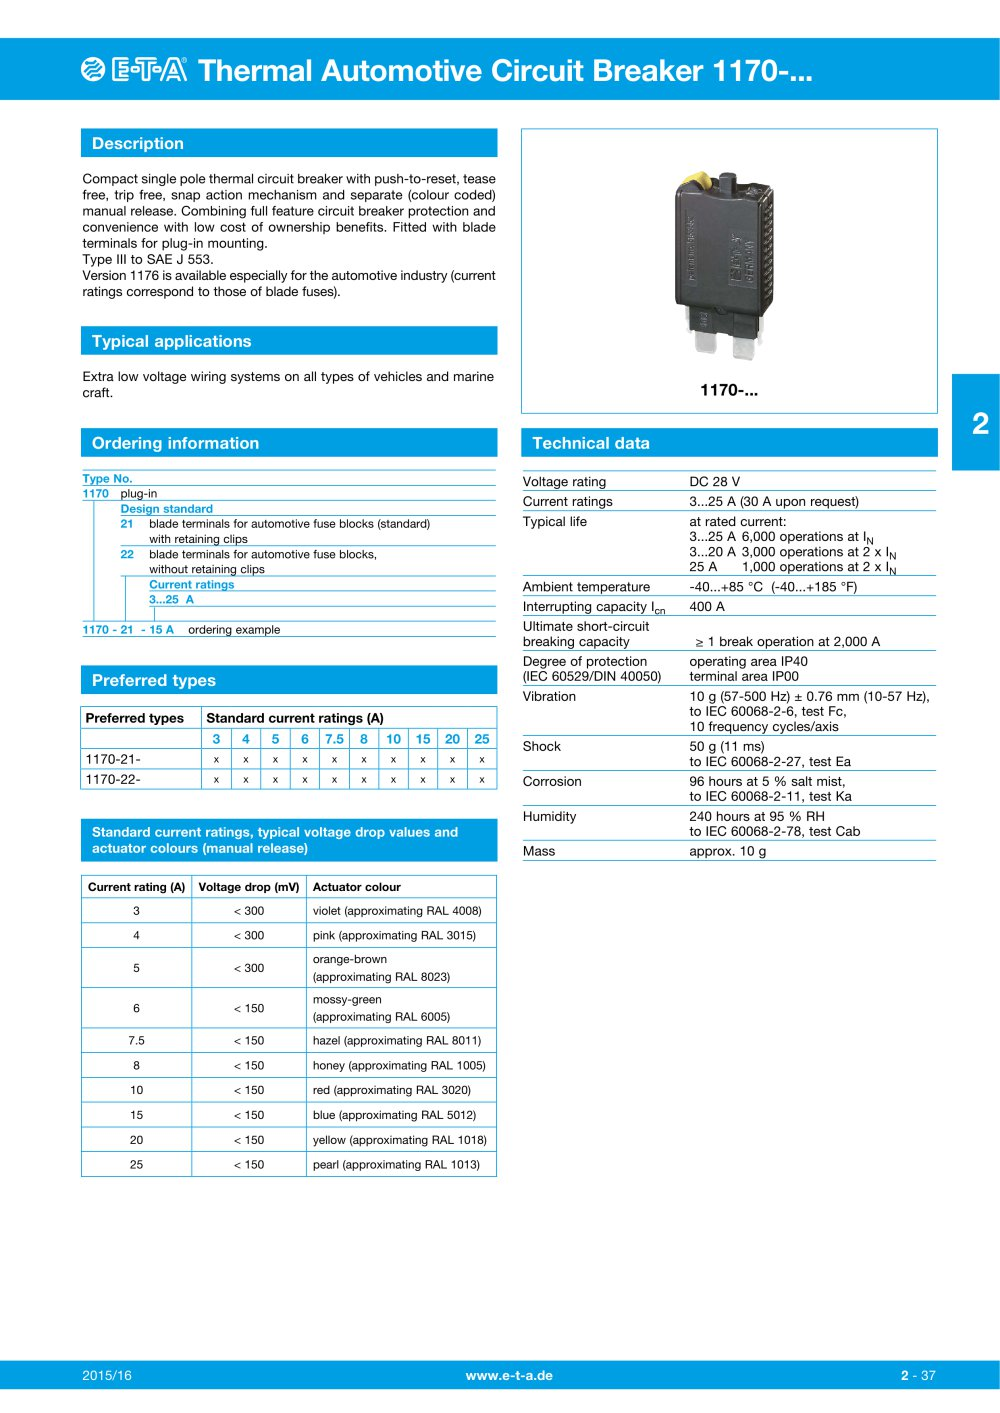 Automotive Circuit Breaker 3 Subscribe Tipos De Cancer 30 Amp Inline Perpendicular Mount Bracket Pollak Thermal 1170 1 4 Pages